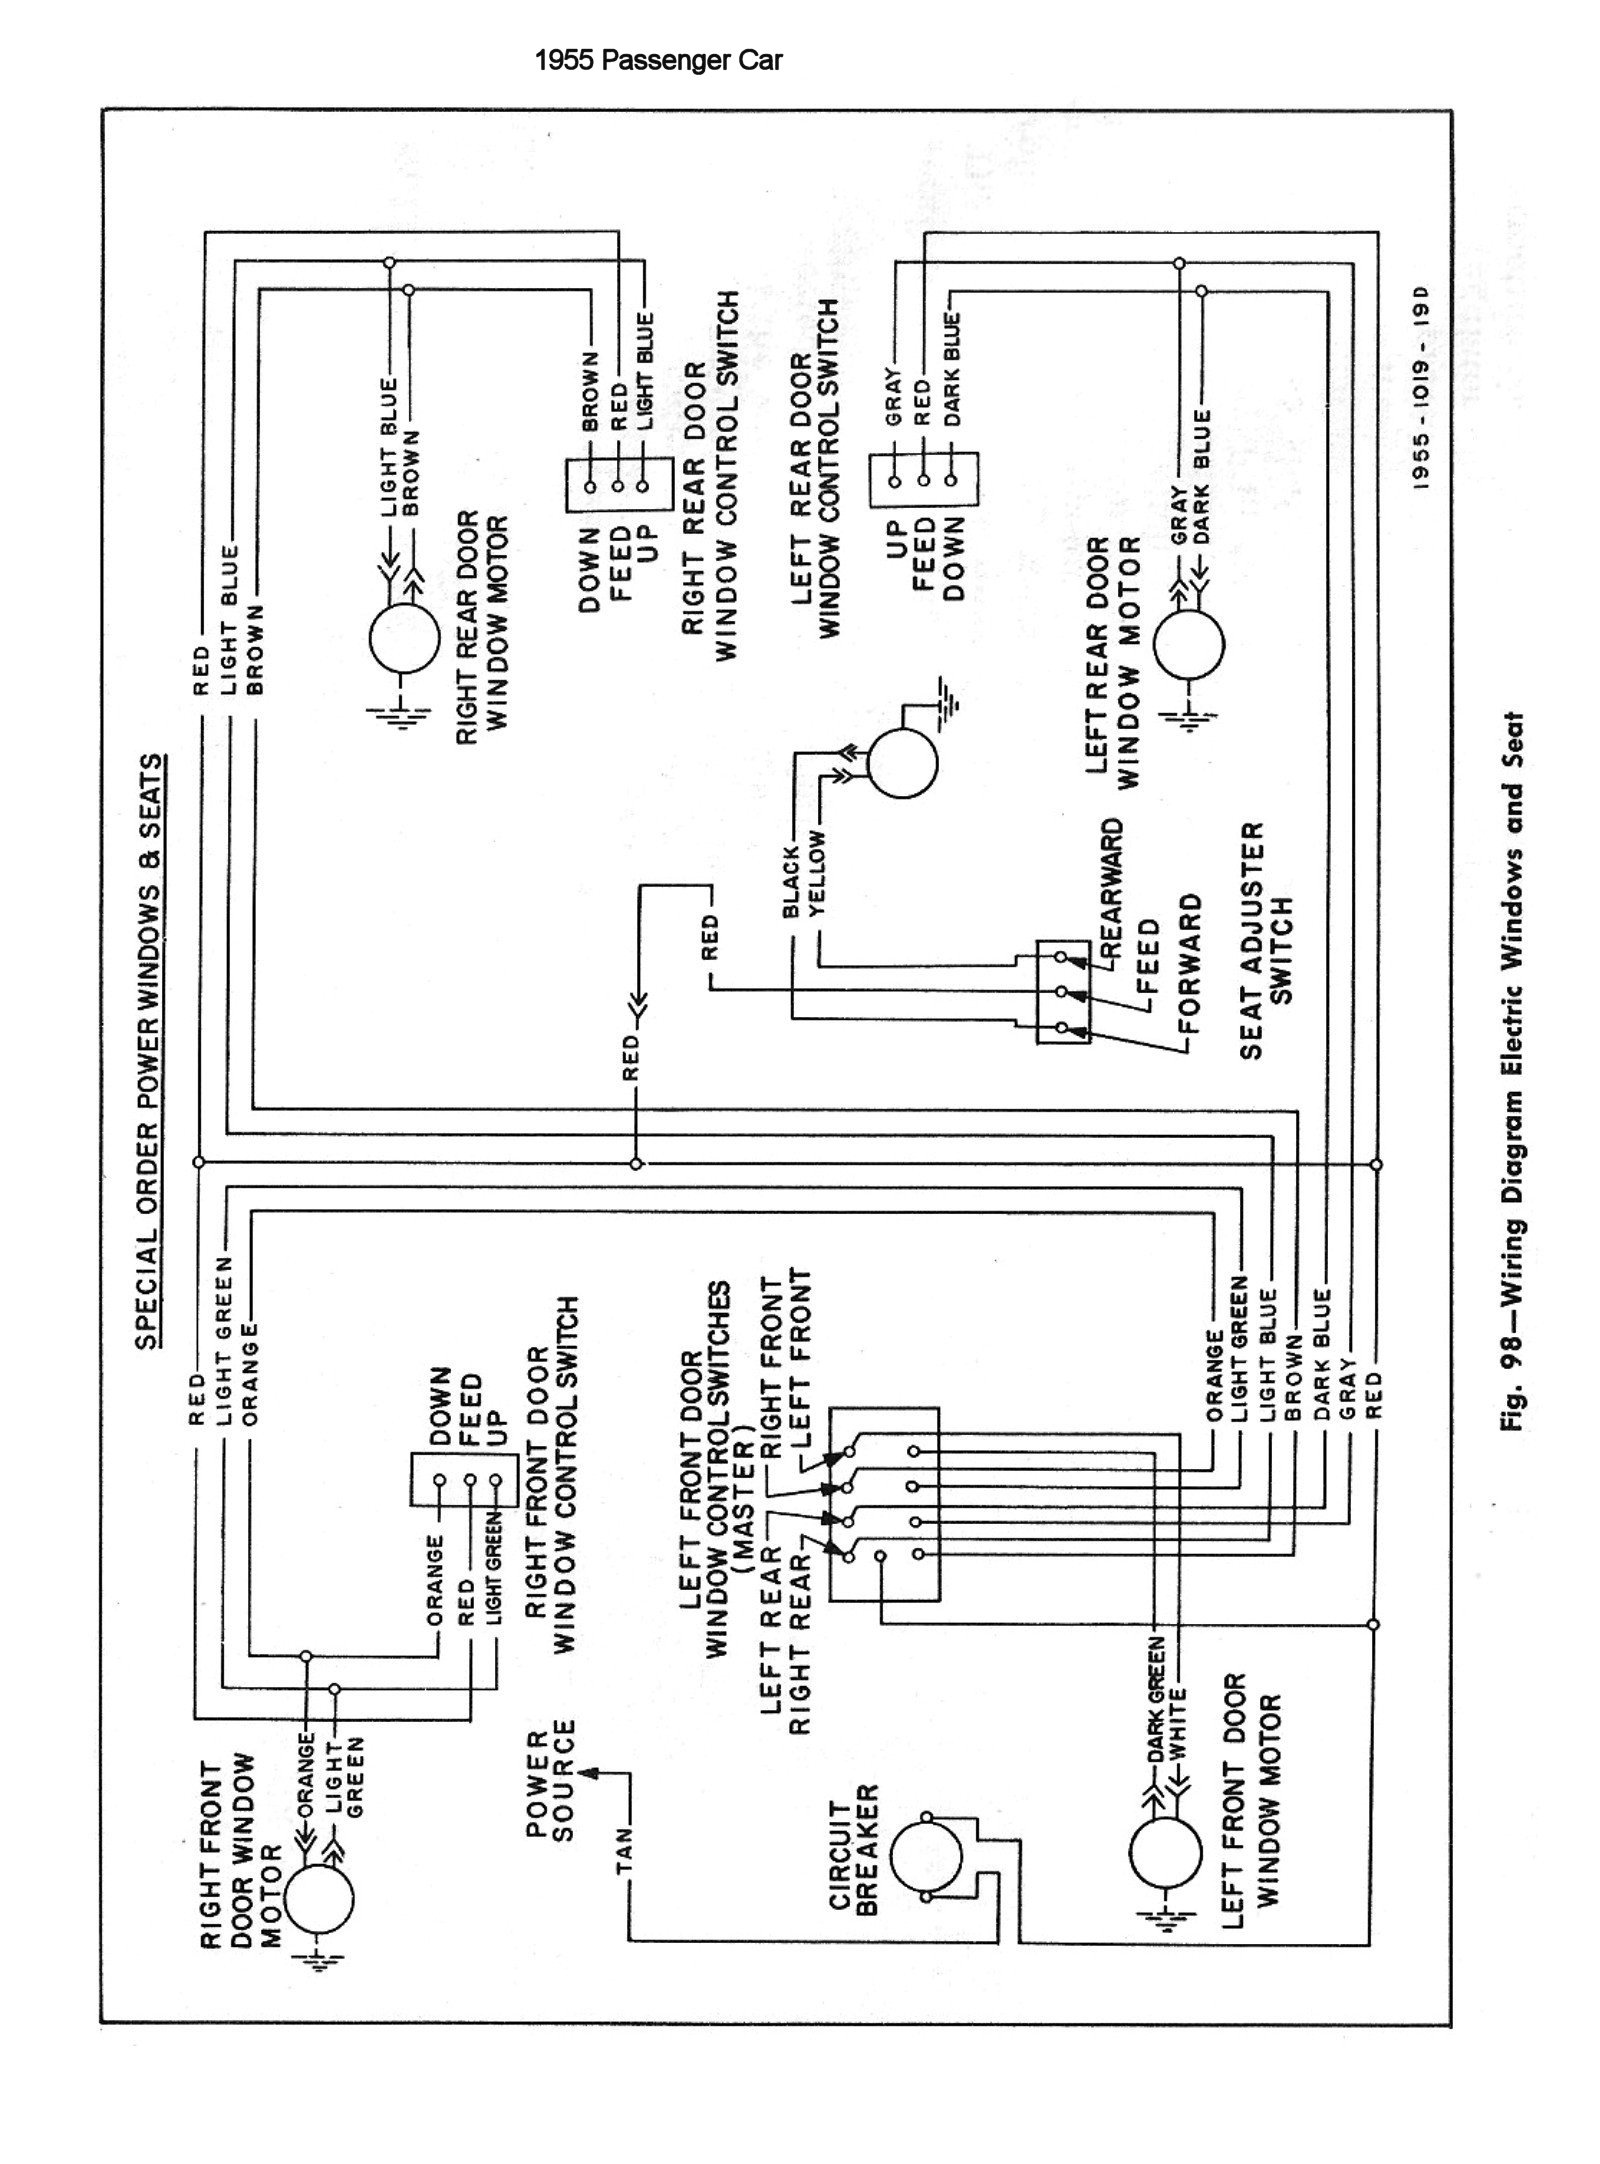 12v circuit breaker wiring diagram free picture